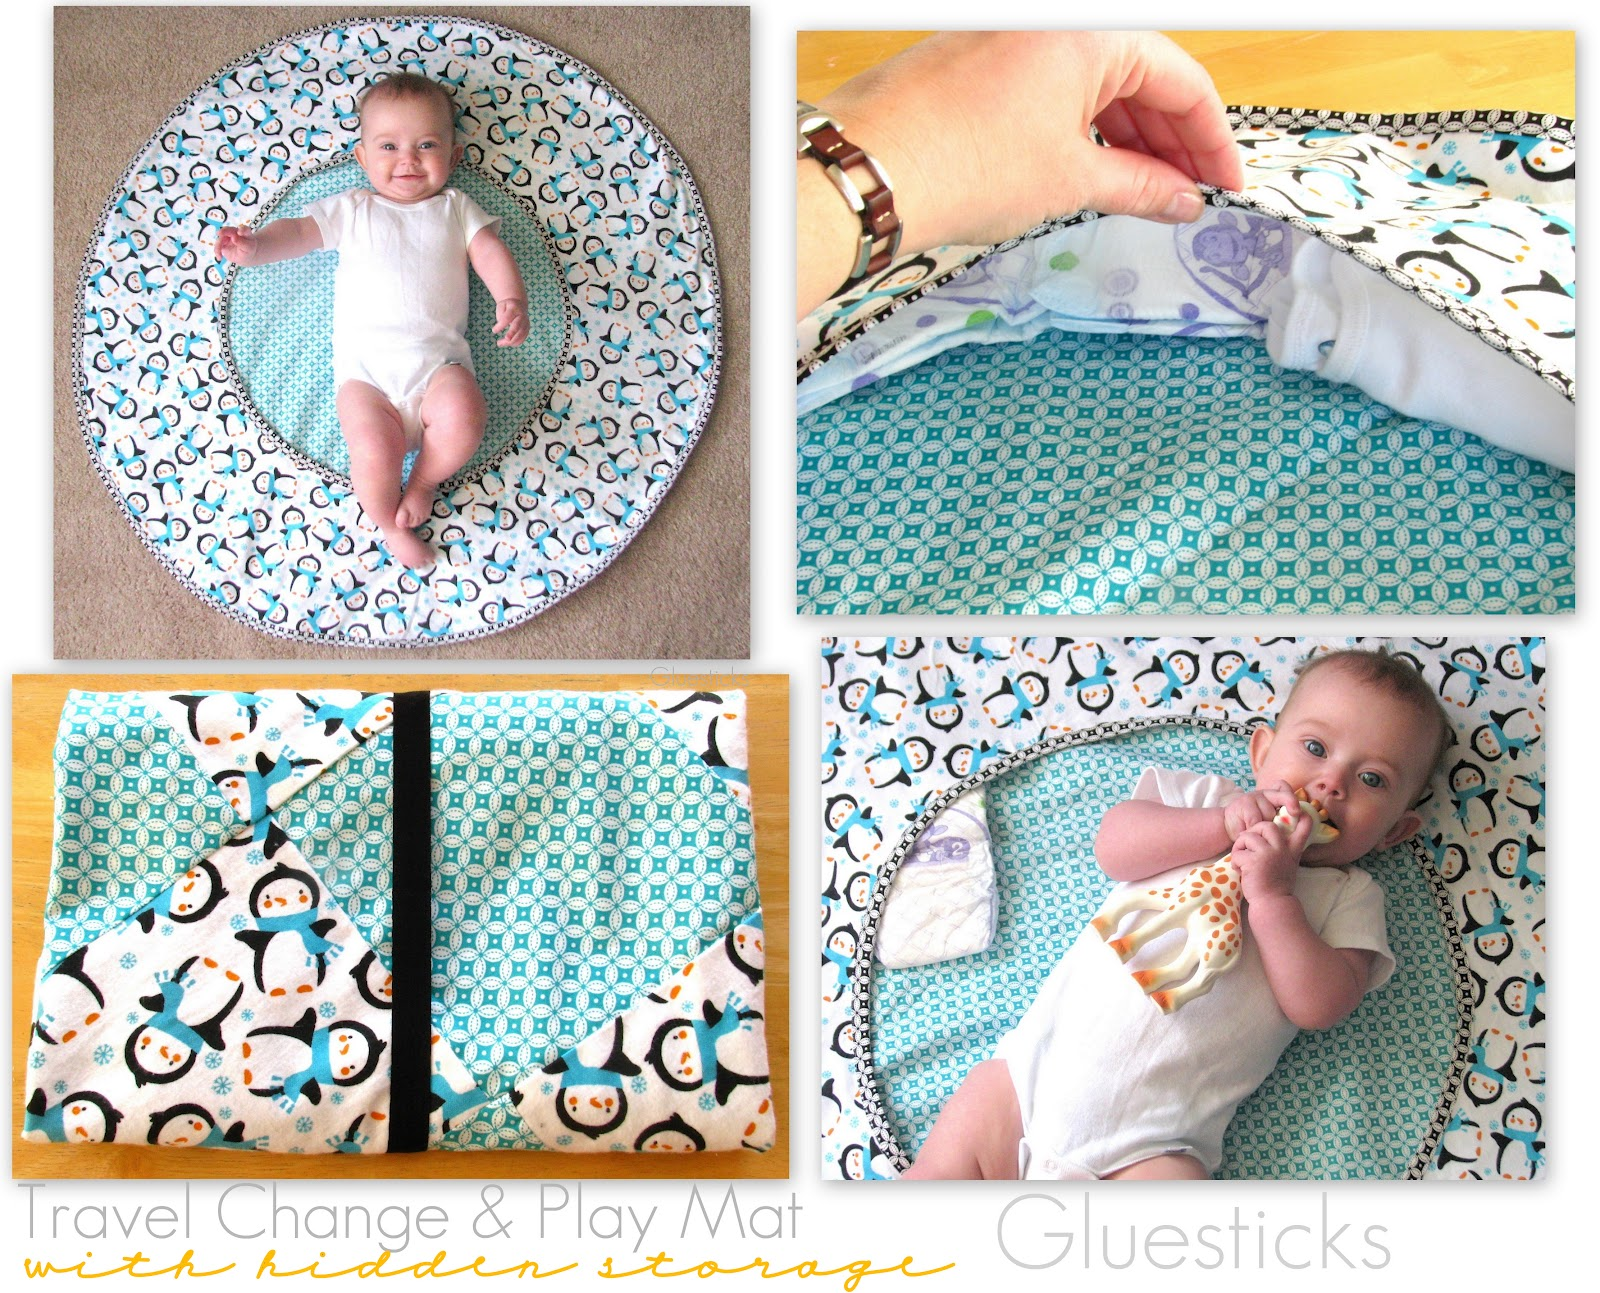 Baby Gift Ideas To Make At Home : Travel diaper changing and playtime mat tutorial gluesticks